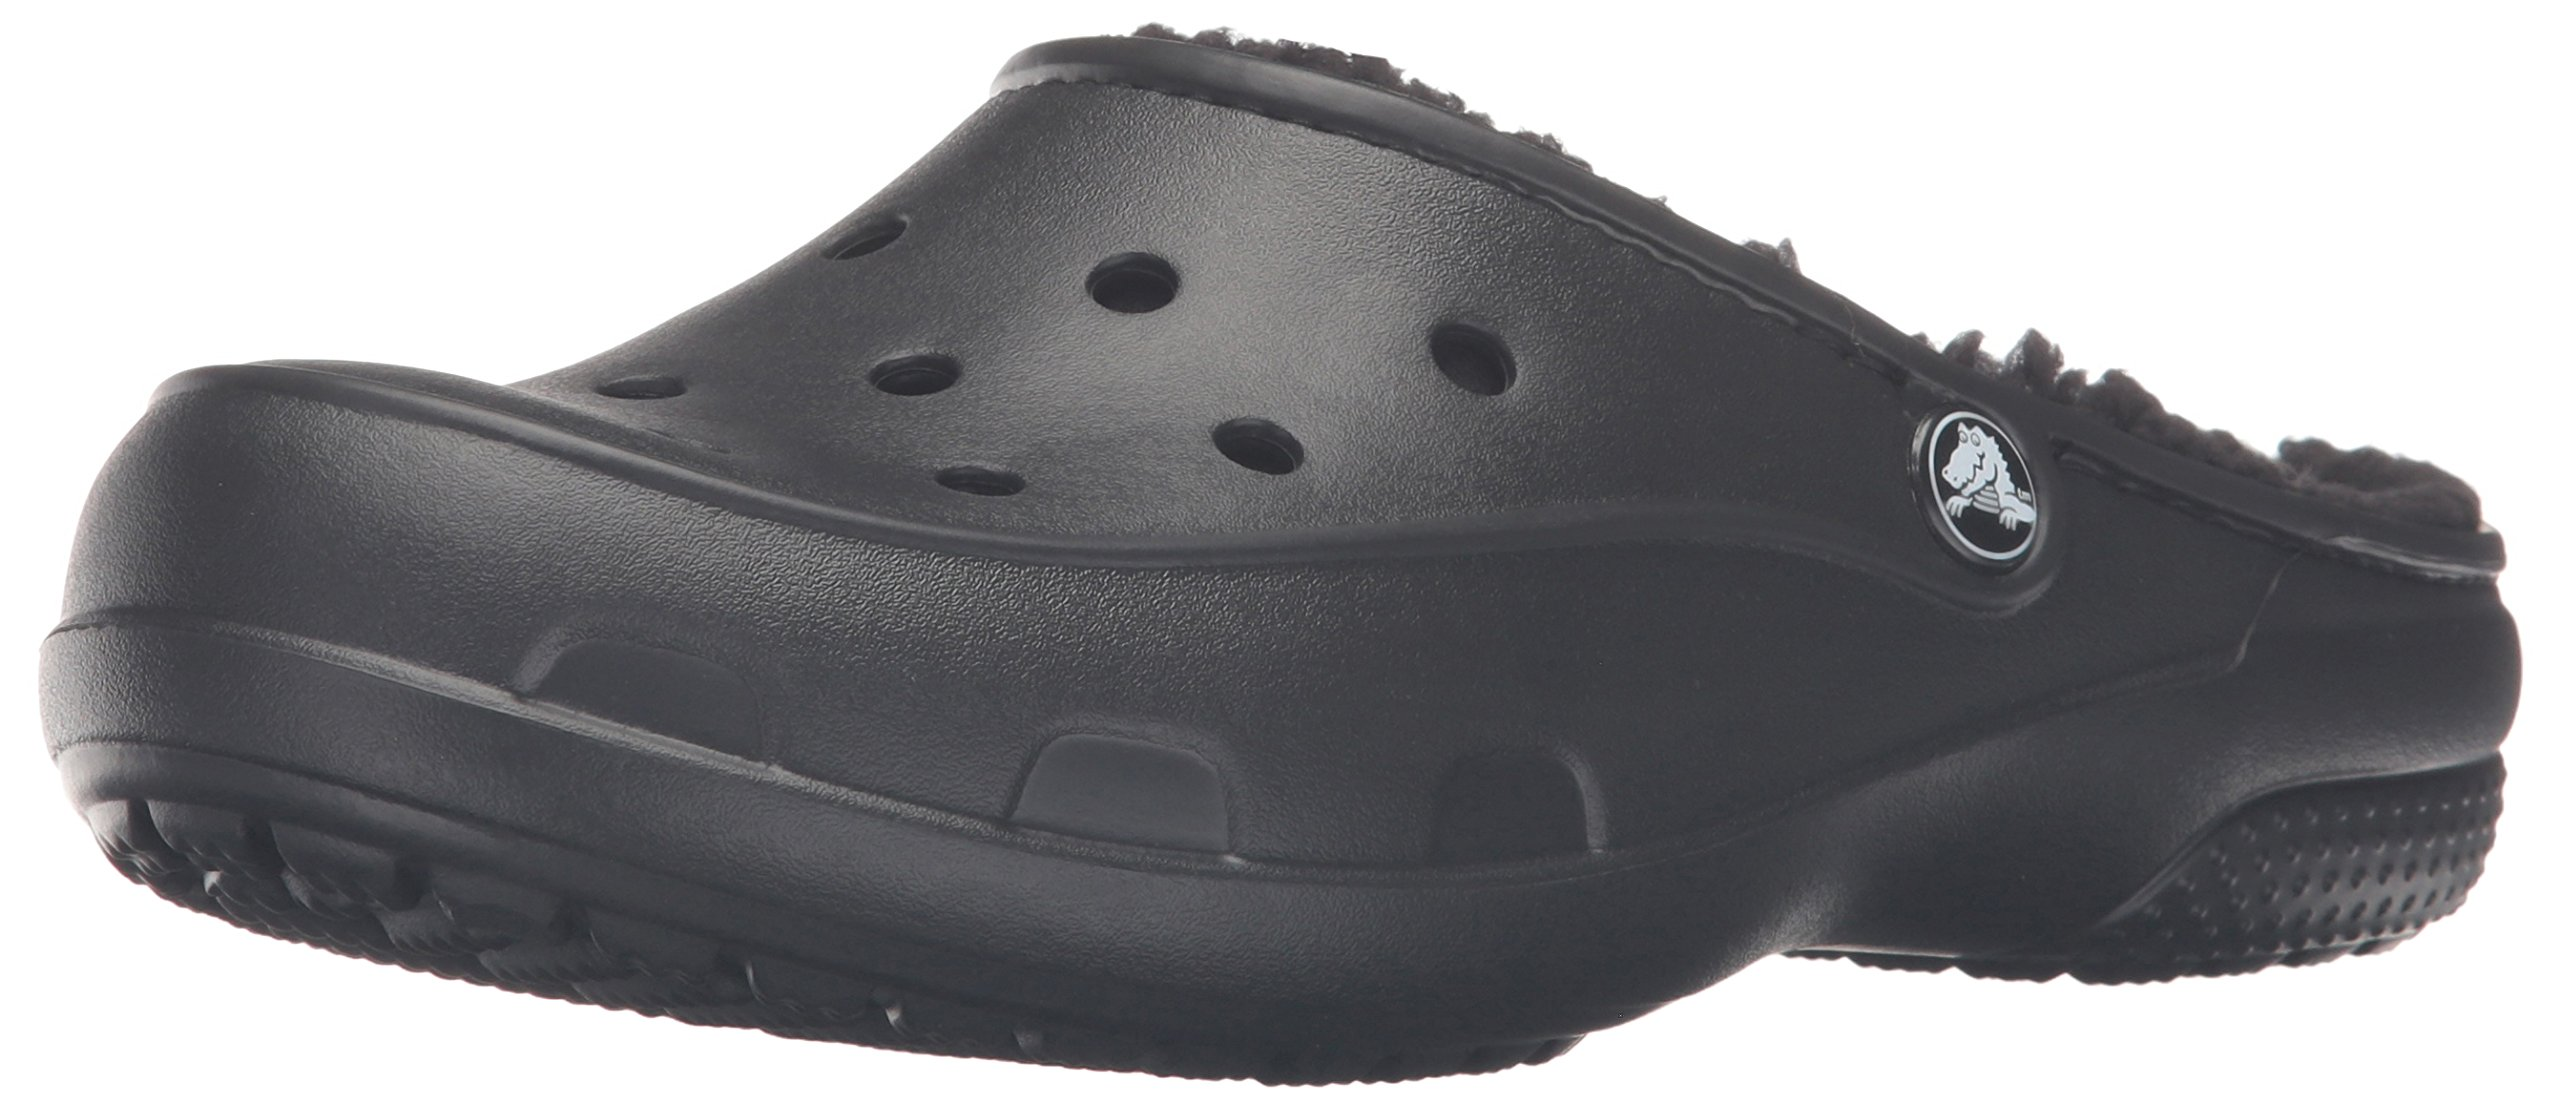 crocs Women's Freesail Plush Lined Clog Mule, Black/Black, 7 M US